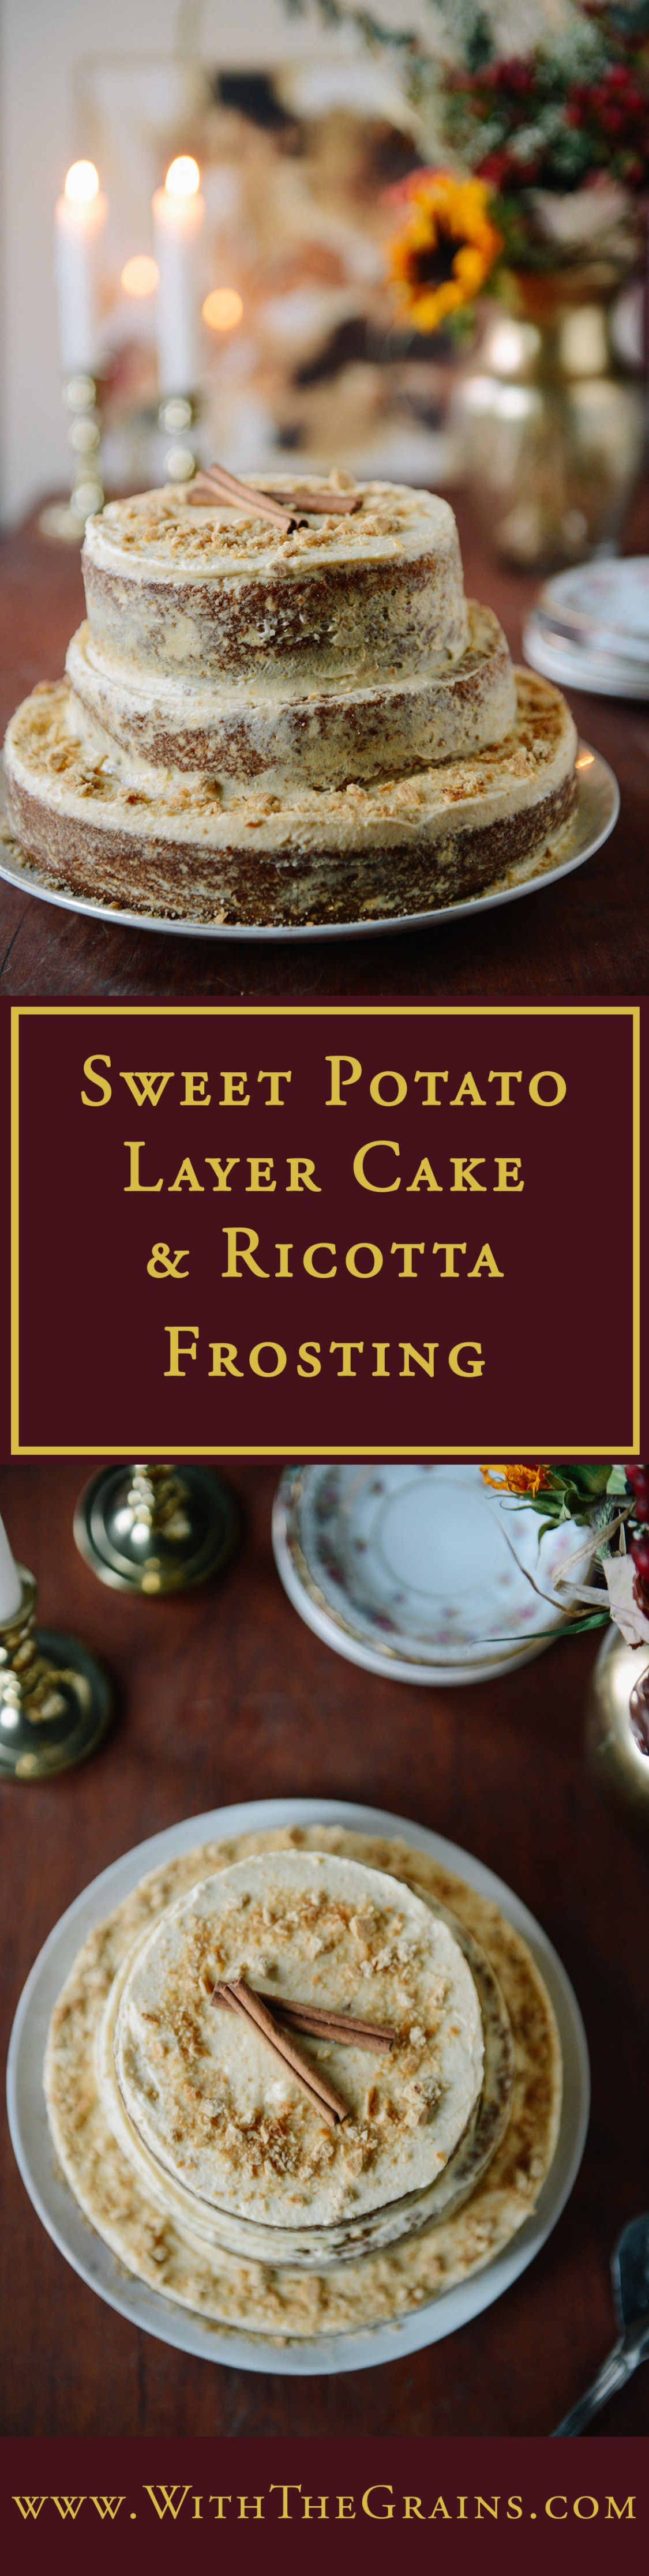 Sweet Potato Layer Cake with Sweet Potato Ricotta Frosting // www.WithTheGrains.com